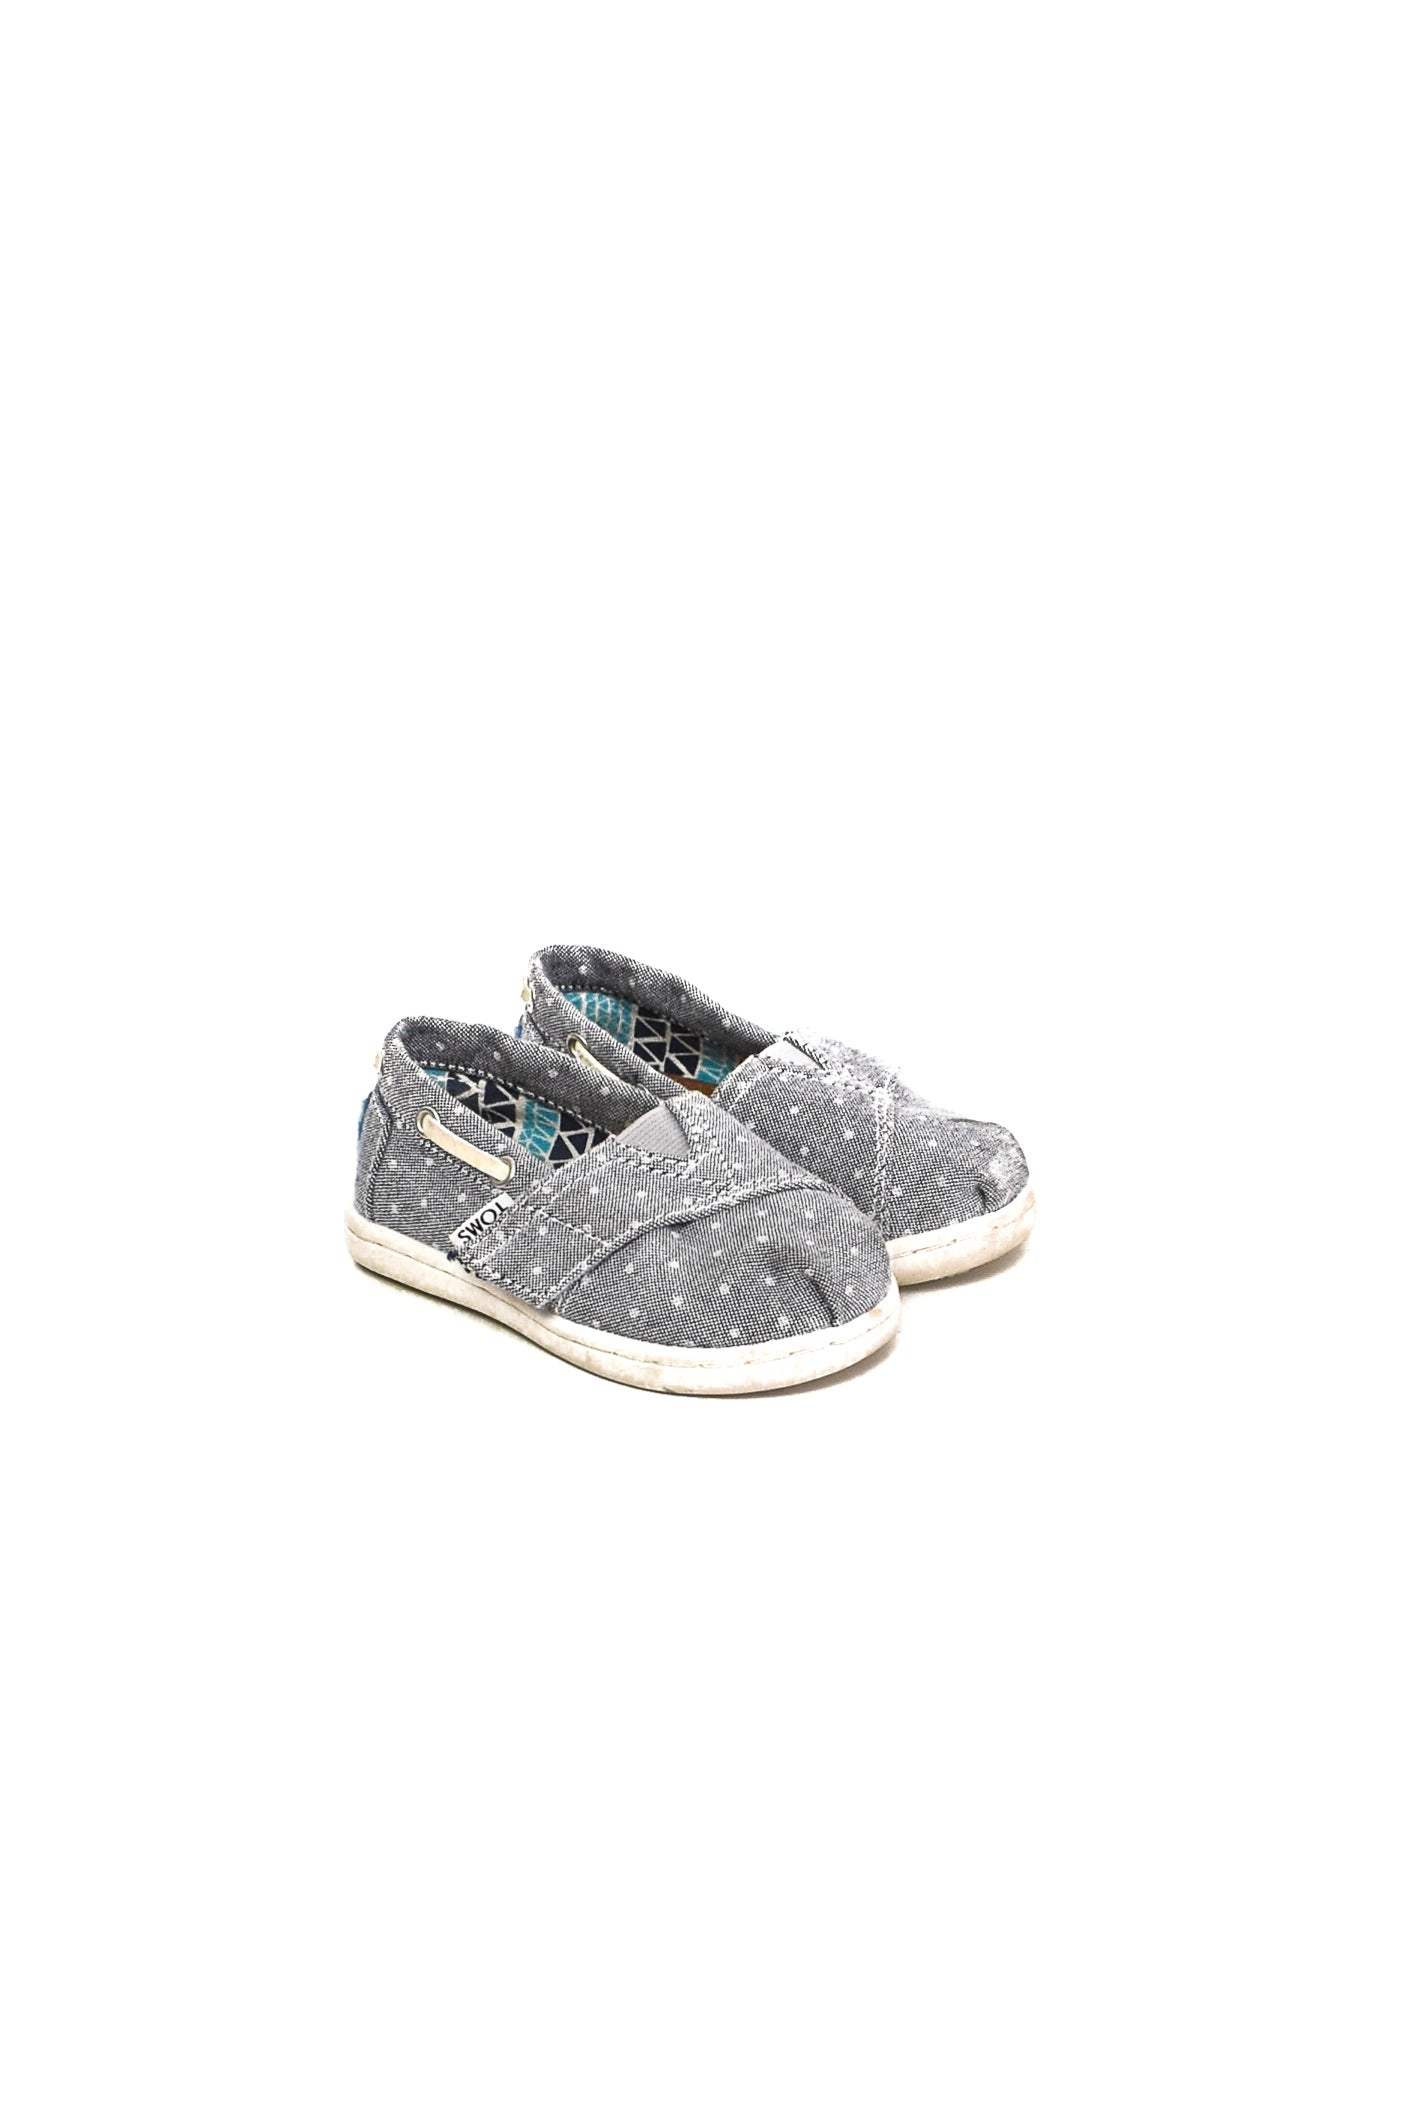 10007857 Toms Baby~Shoes 12-18M (US 5) at Retykle